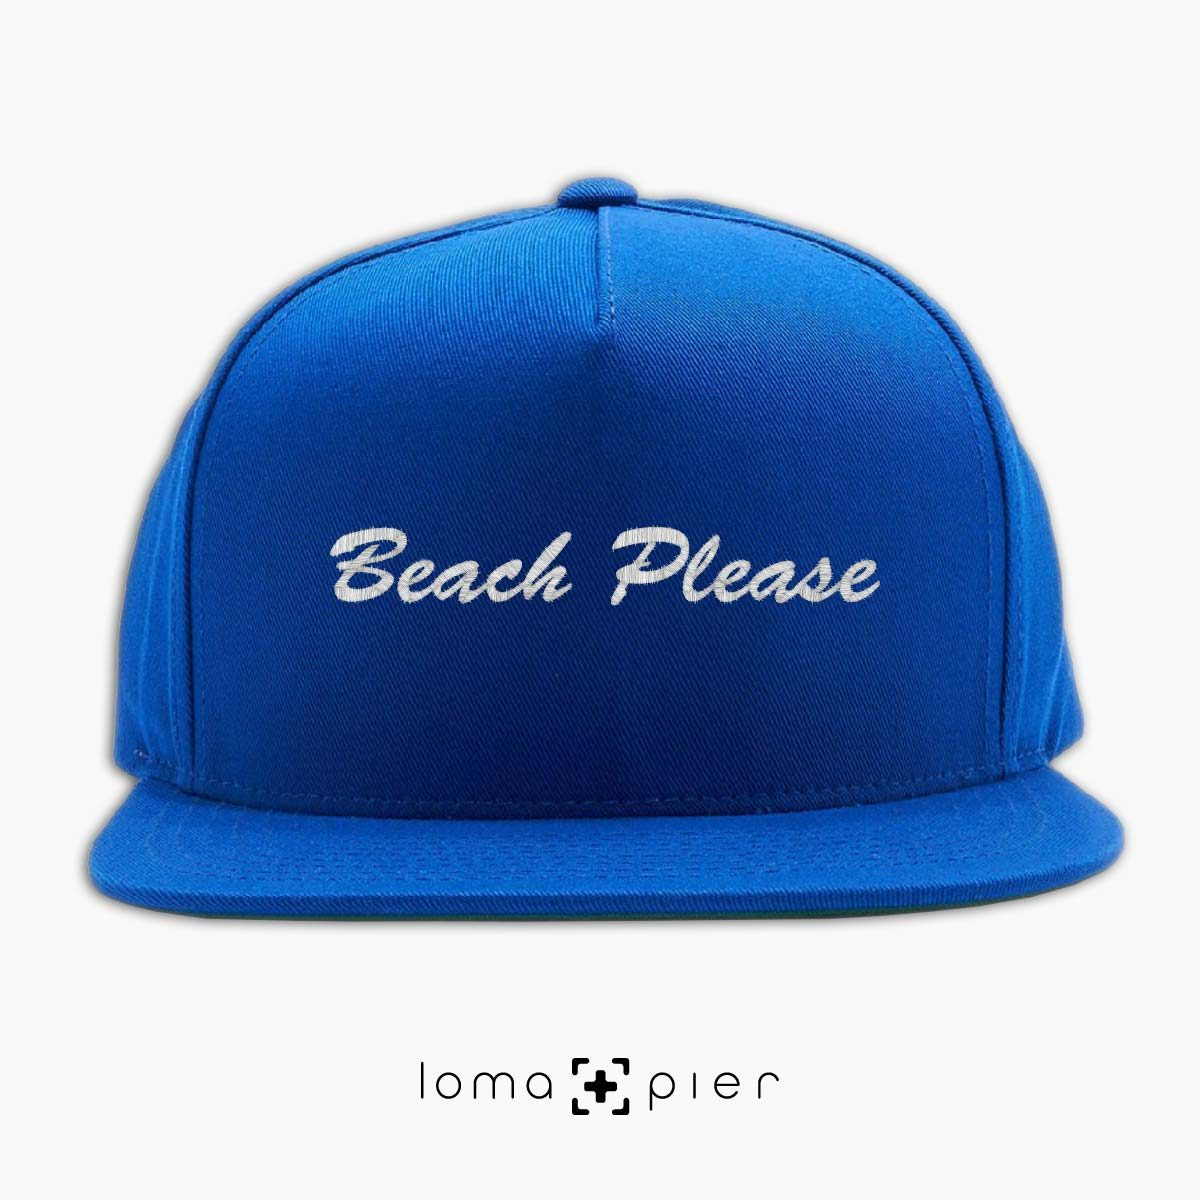 BEACH PLEASE embroidered on a royal blue classic snapback hat with white thread by loma+pier hat store